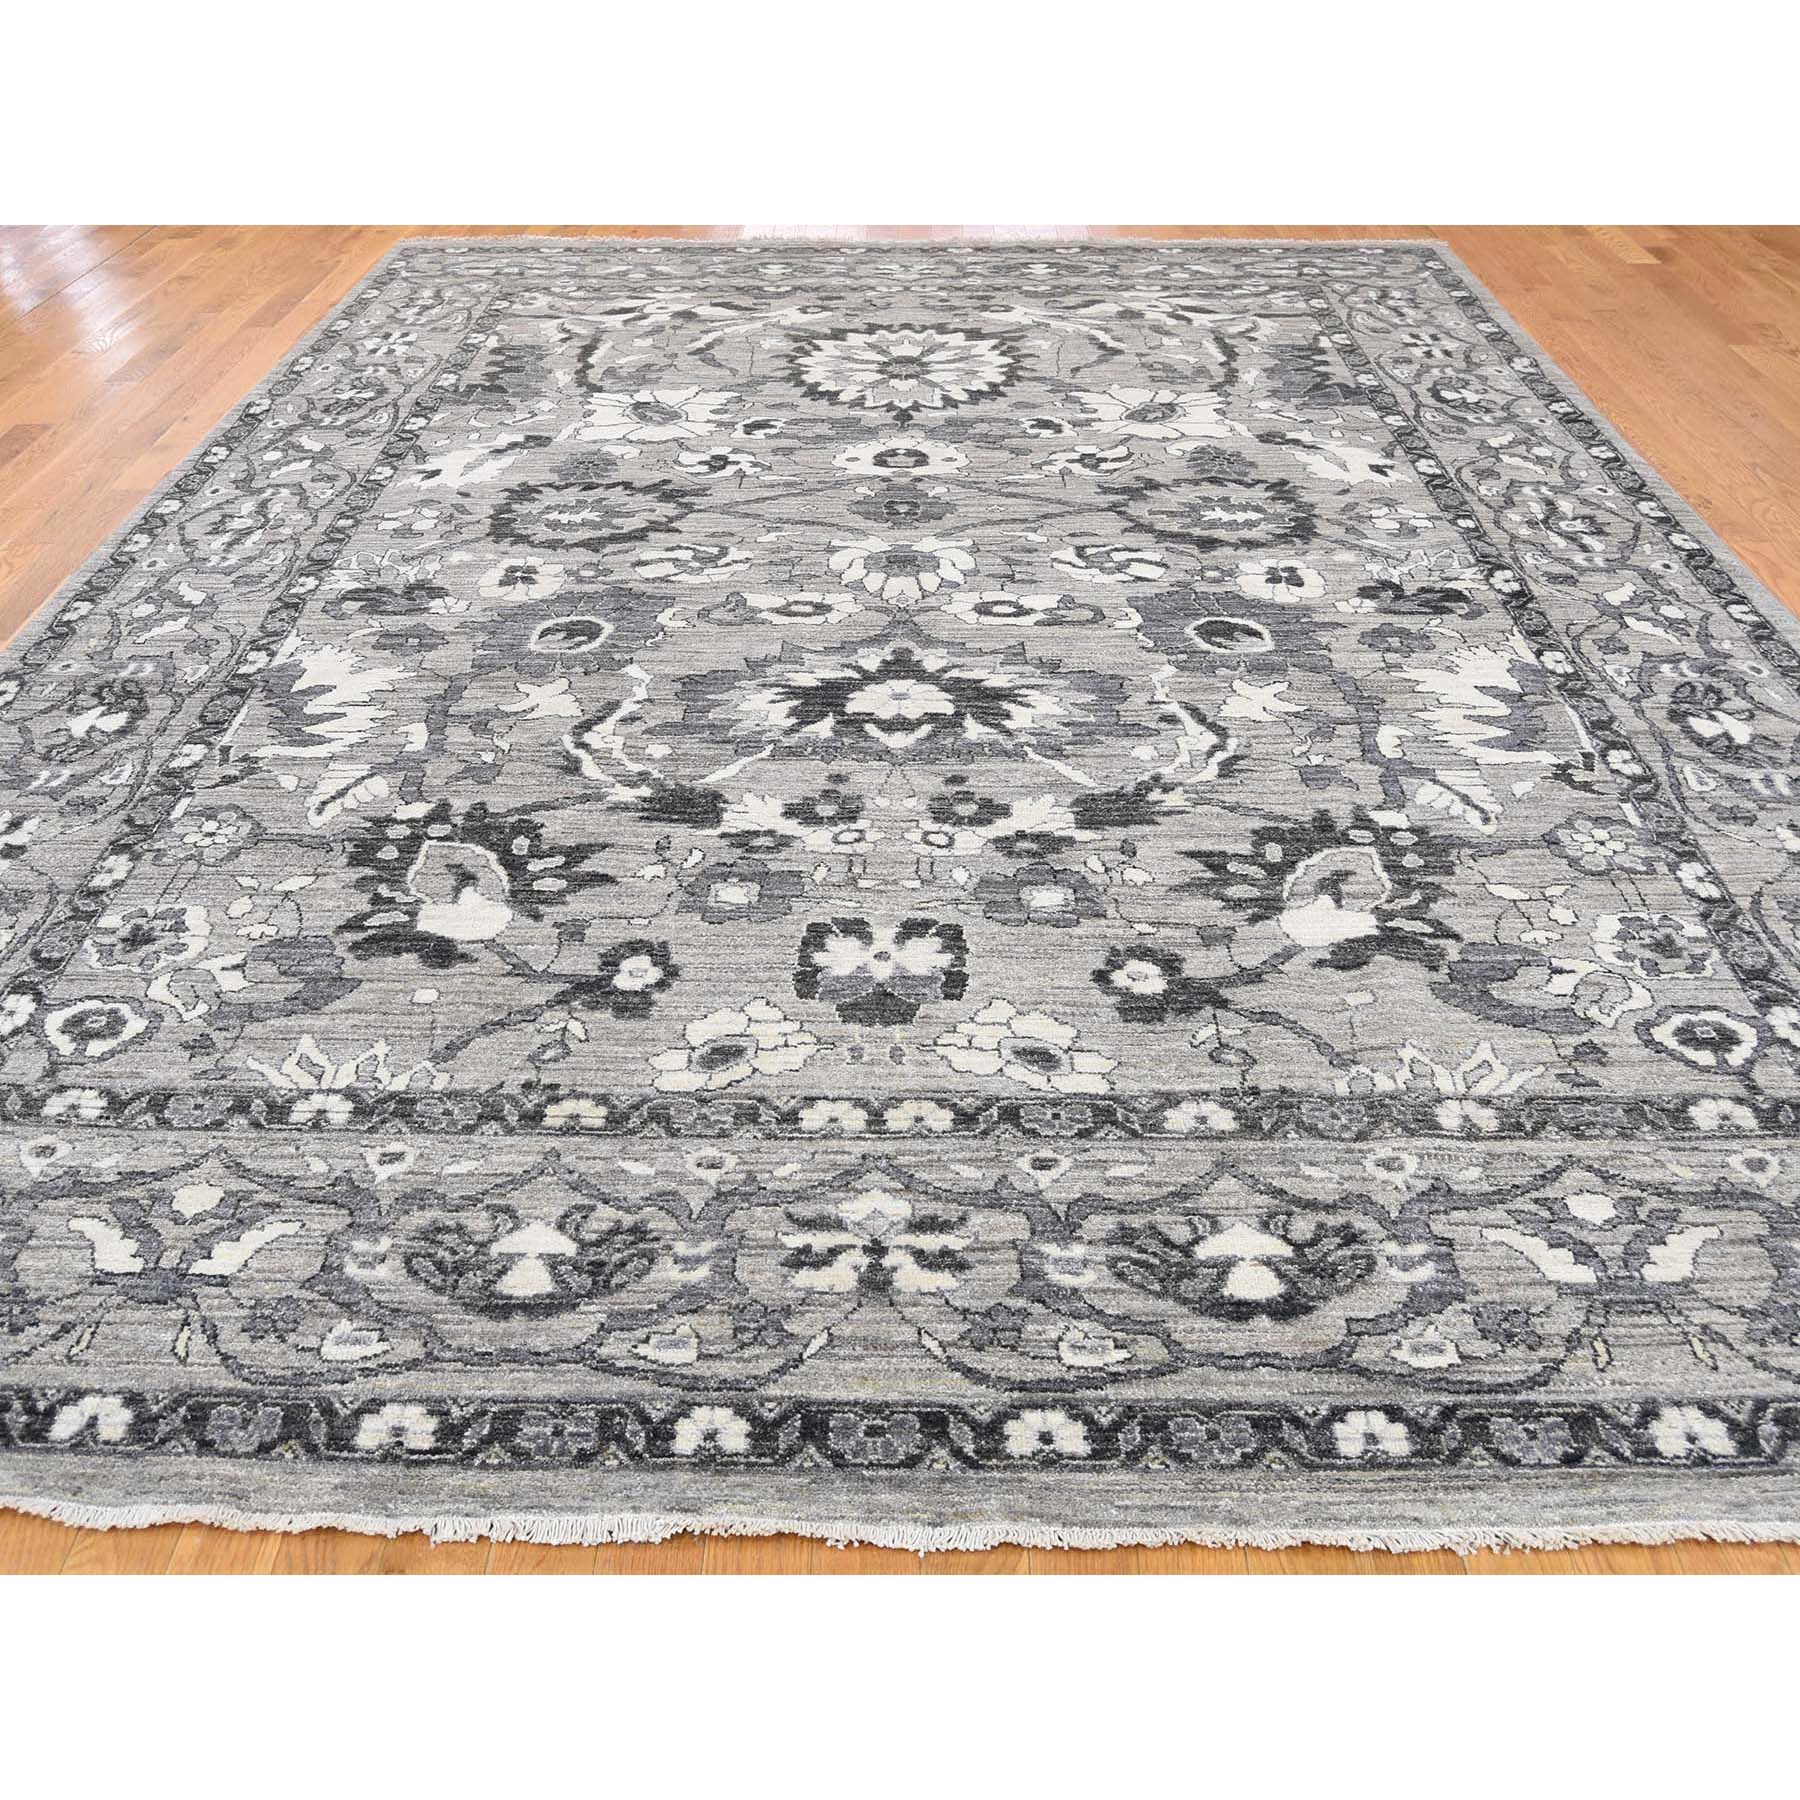 "9'x11'7"" Heriz Pure Wool with Natural Colors Hand-Knotted Oriental Rug"